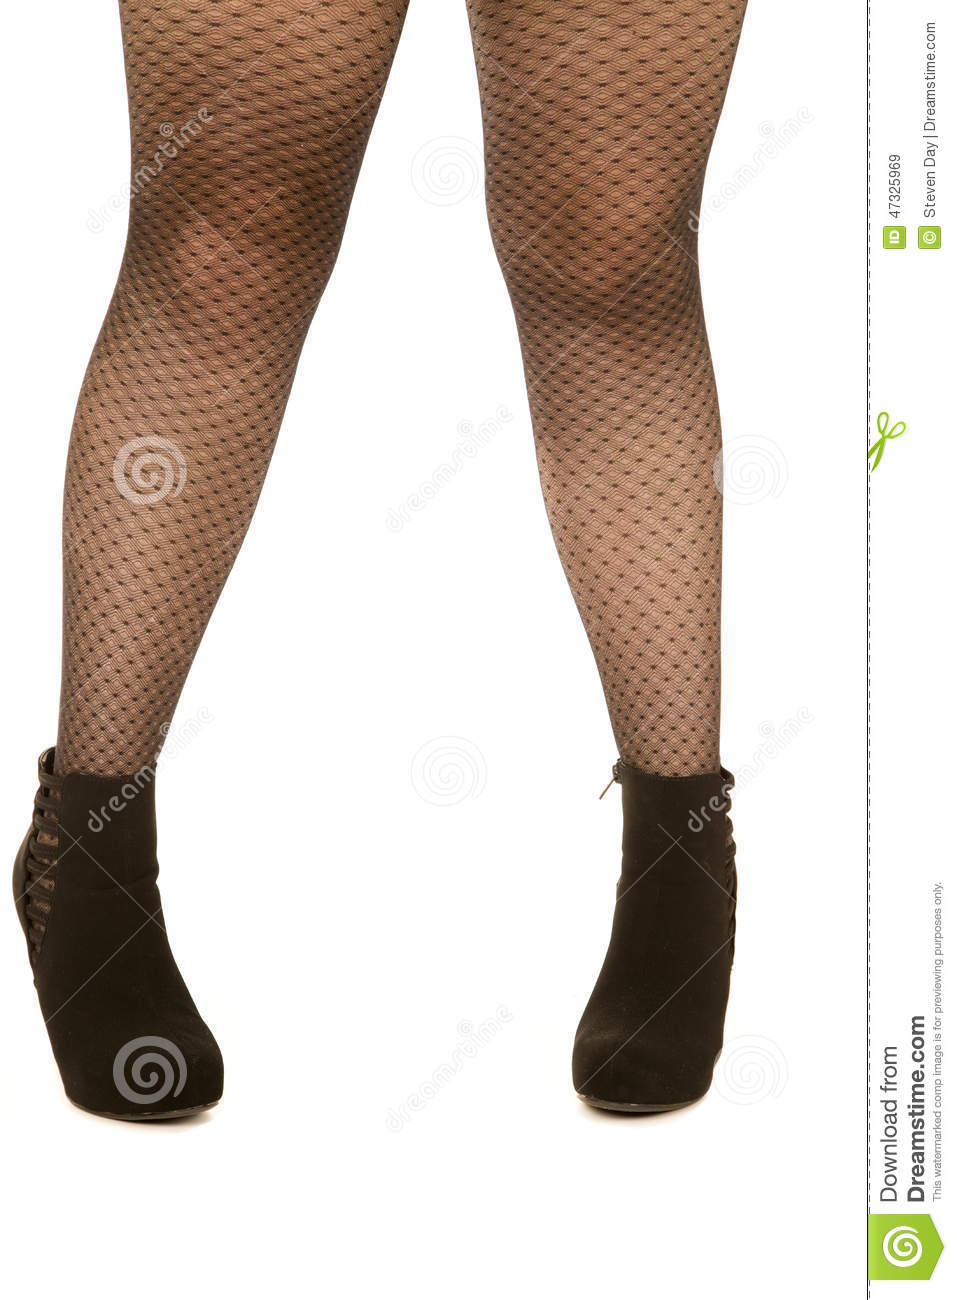 bd6831be8e21 Woman s Legs Wearing Fishnet Stockings And High Heels Stock Photo ...